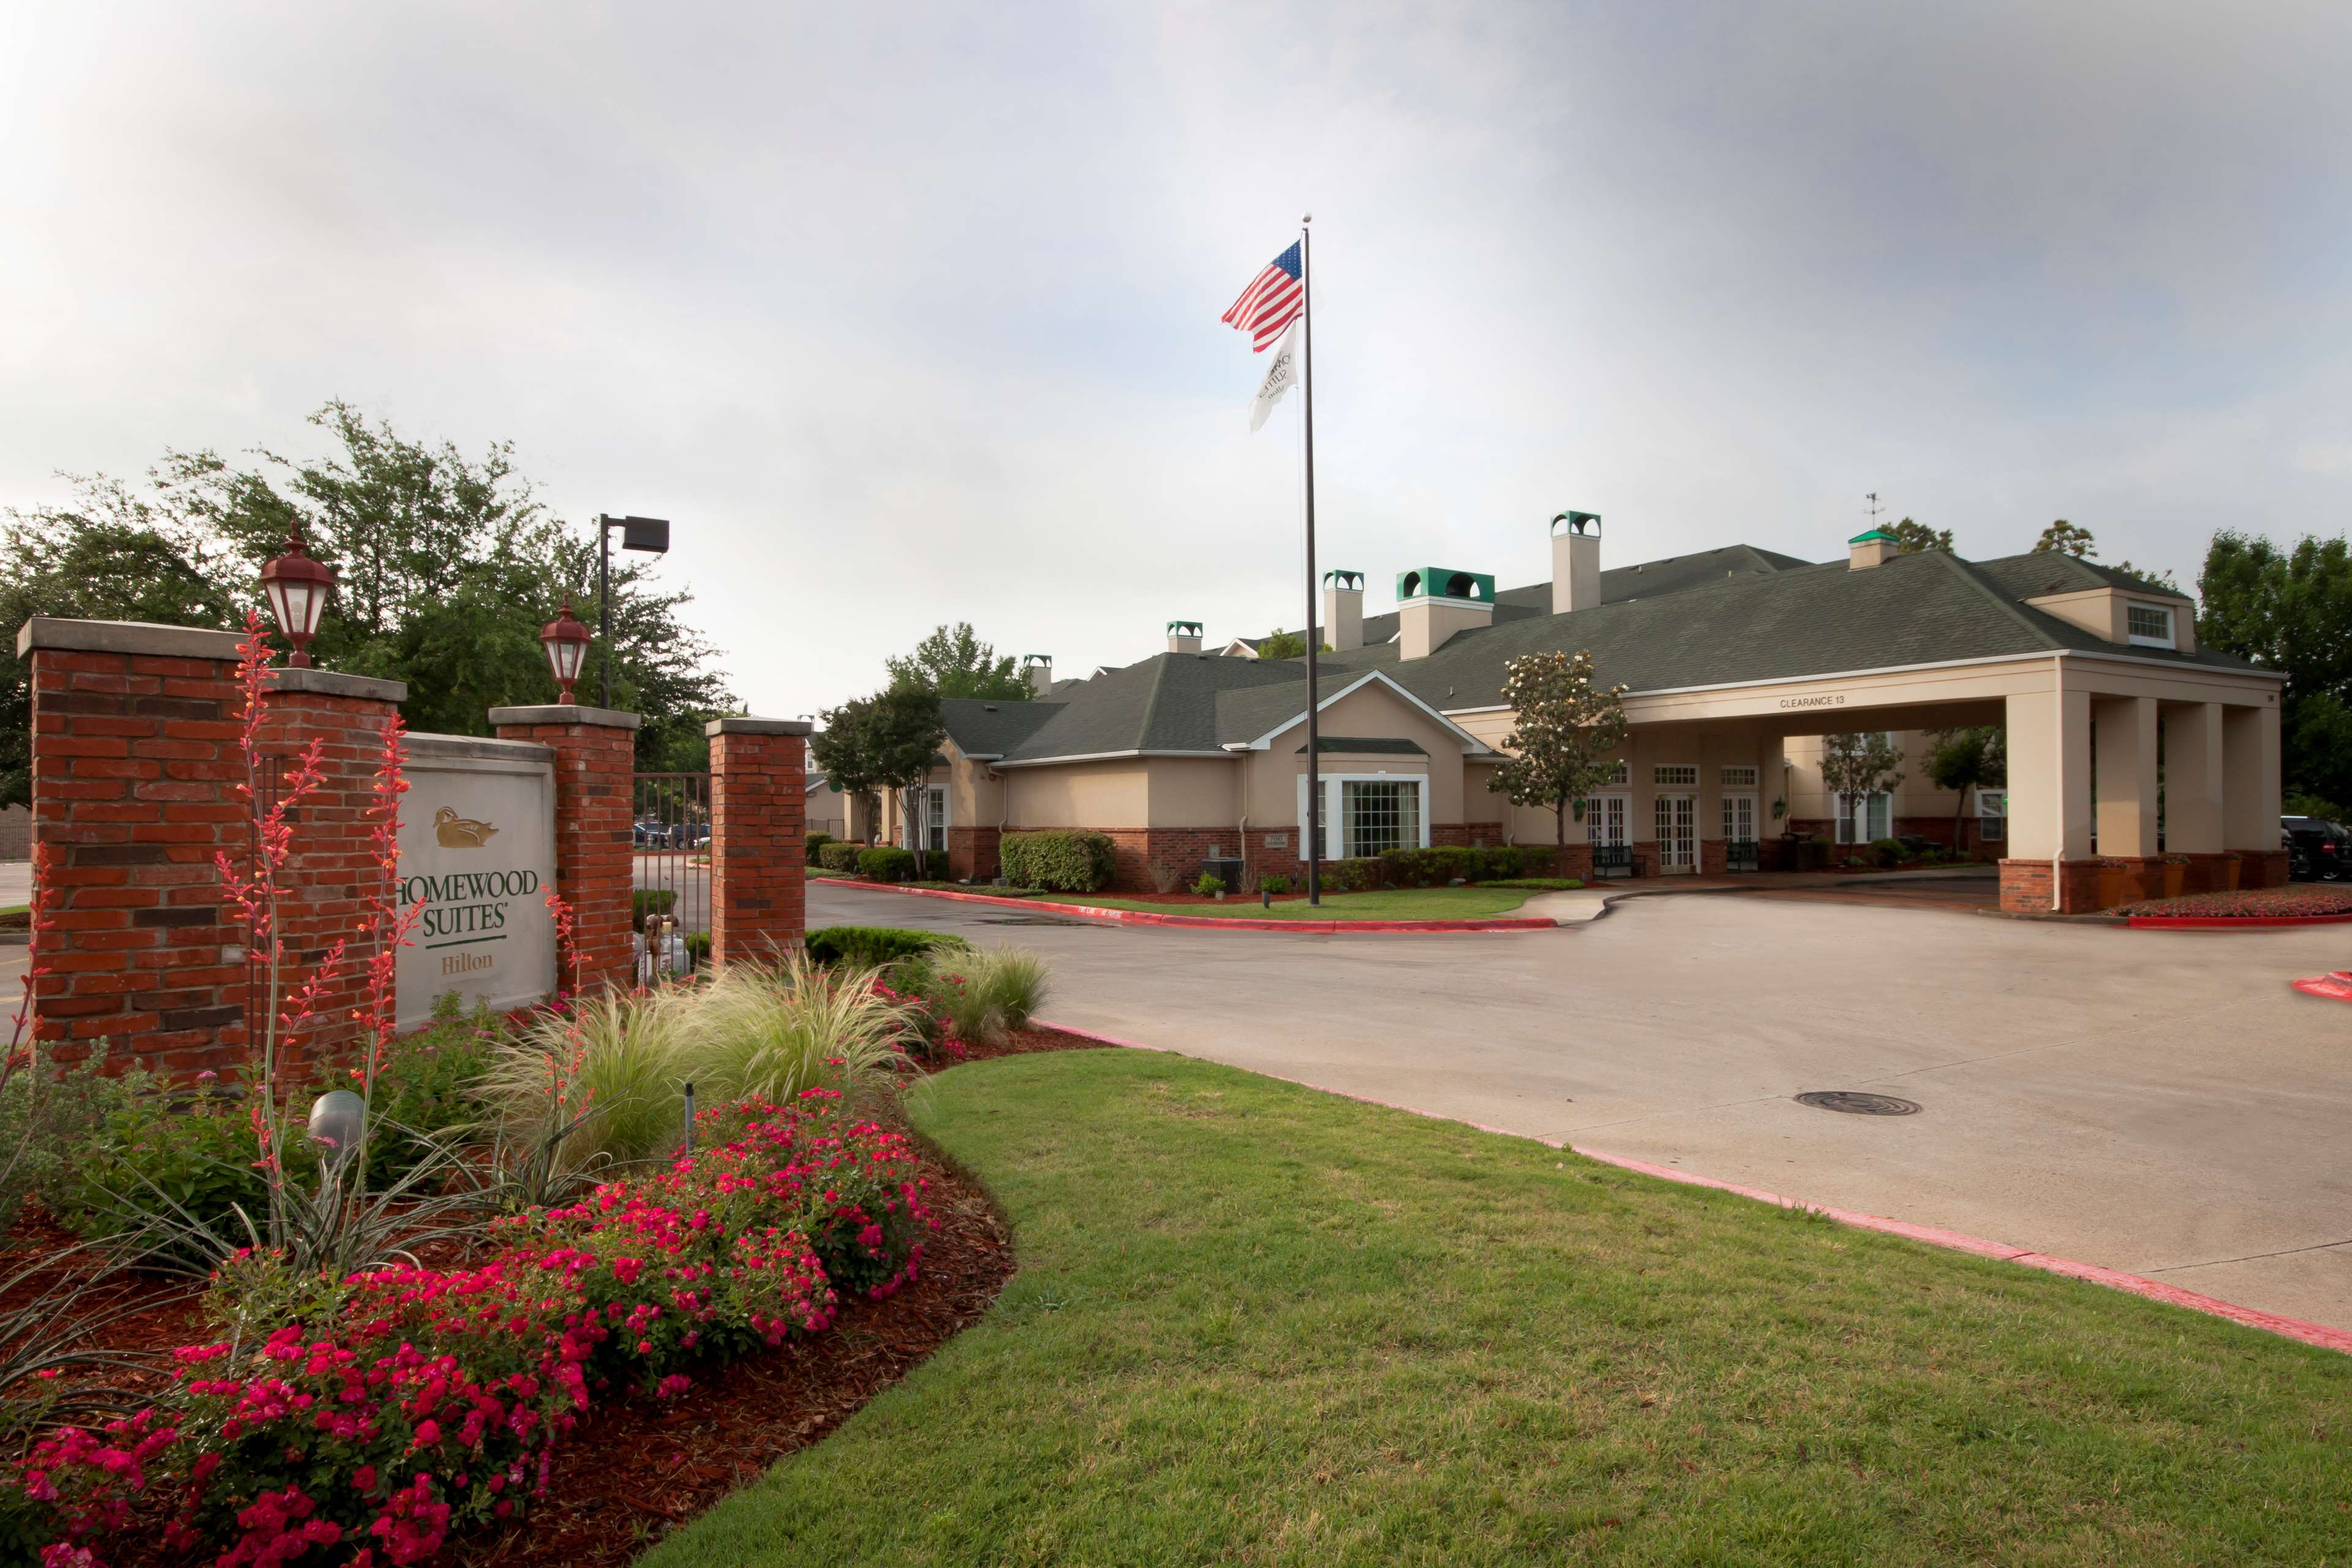 Homewood Suites by Hilton Dallas-Lewisville image 1